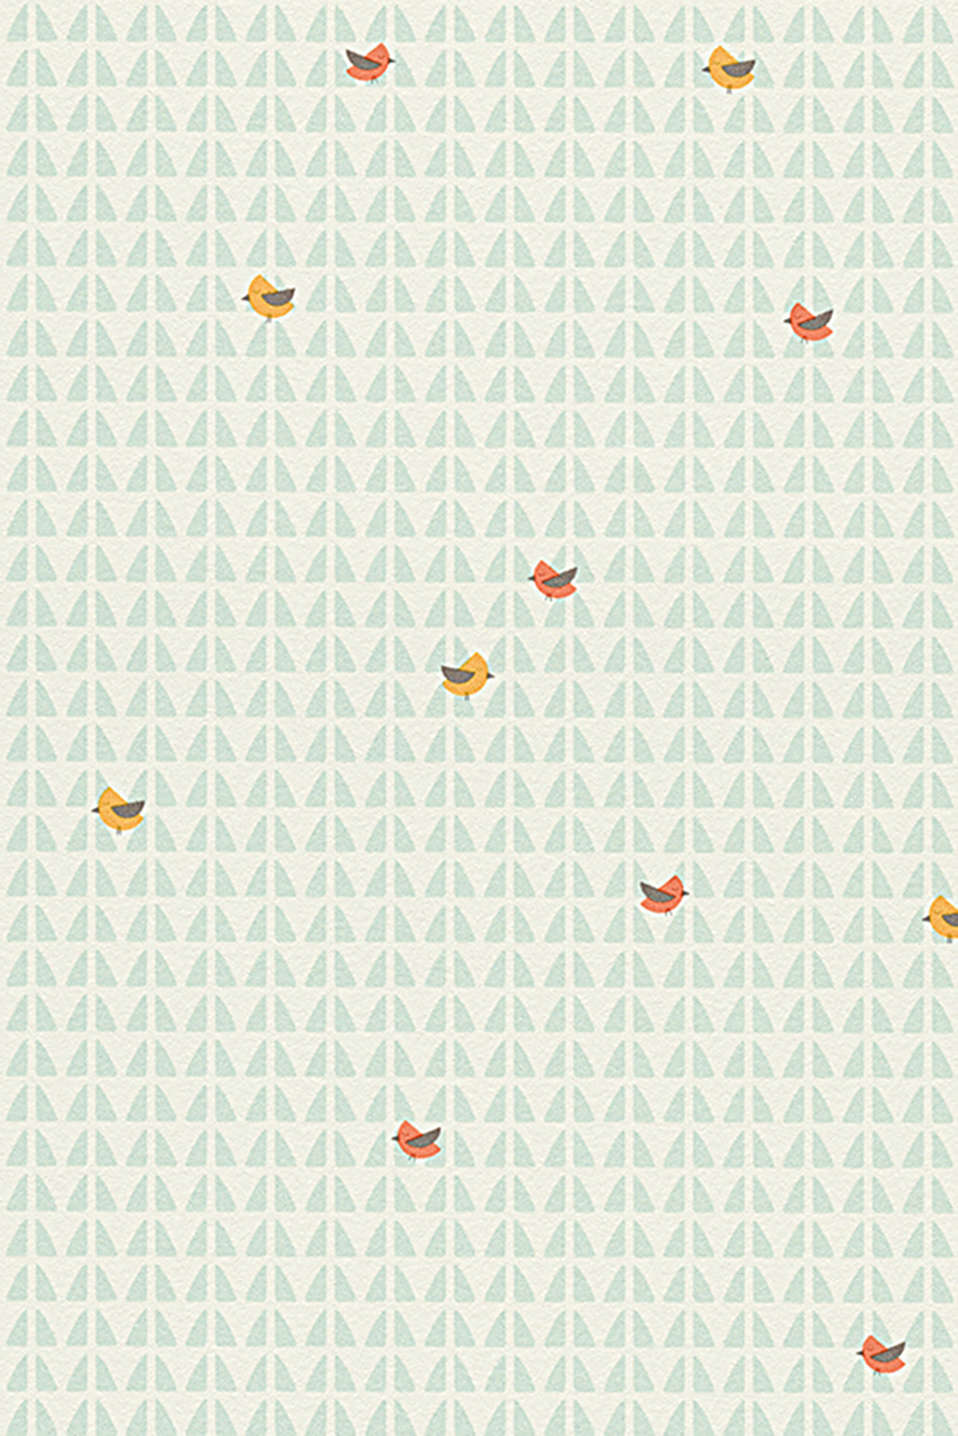 Esprit - Papel pintado High Sky Birds Patterned